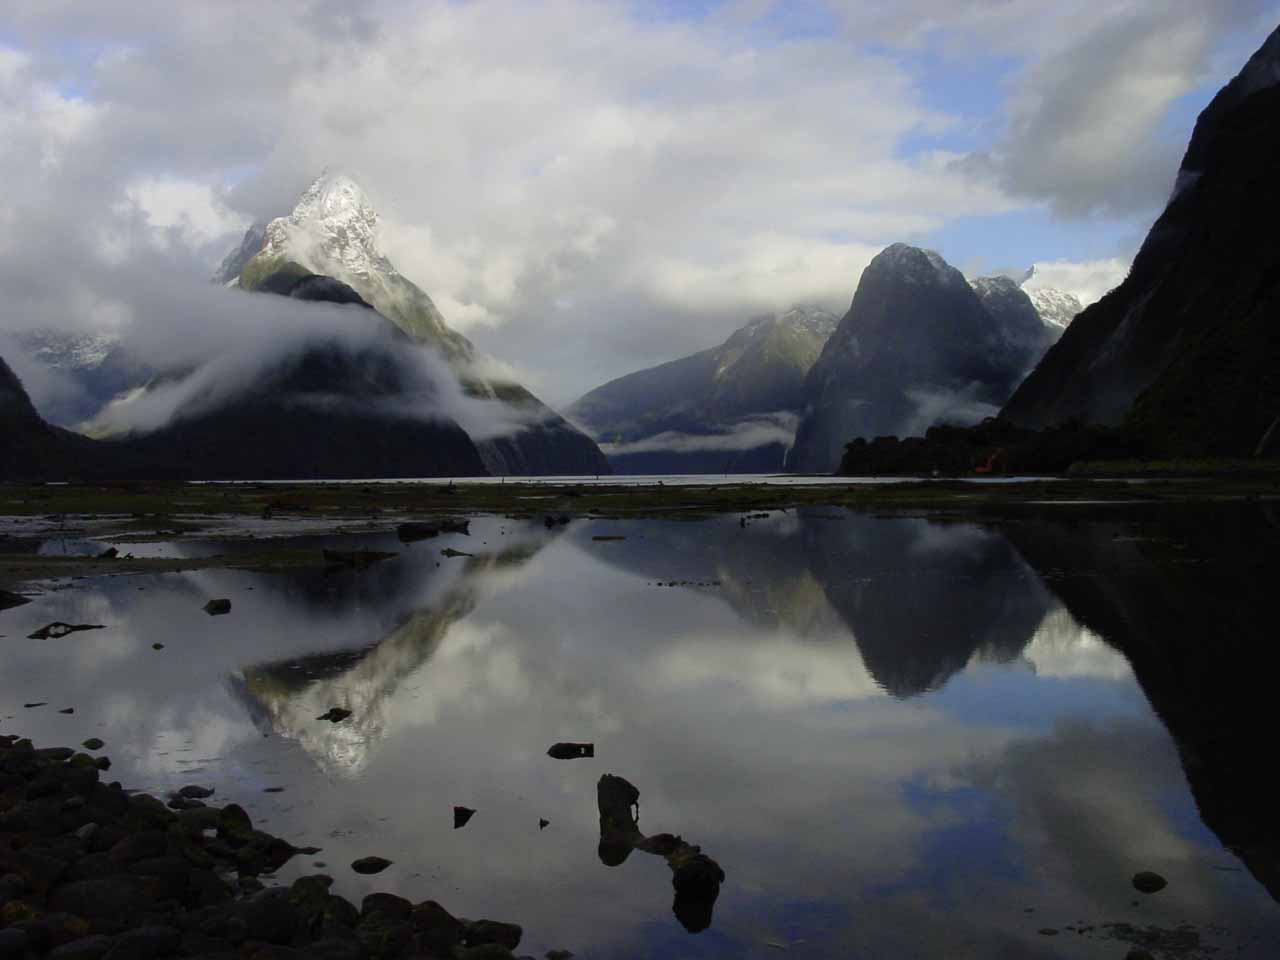 The Milford Sound in the South Island of New Zealand